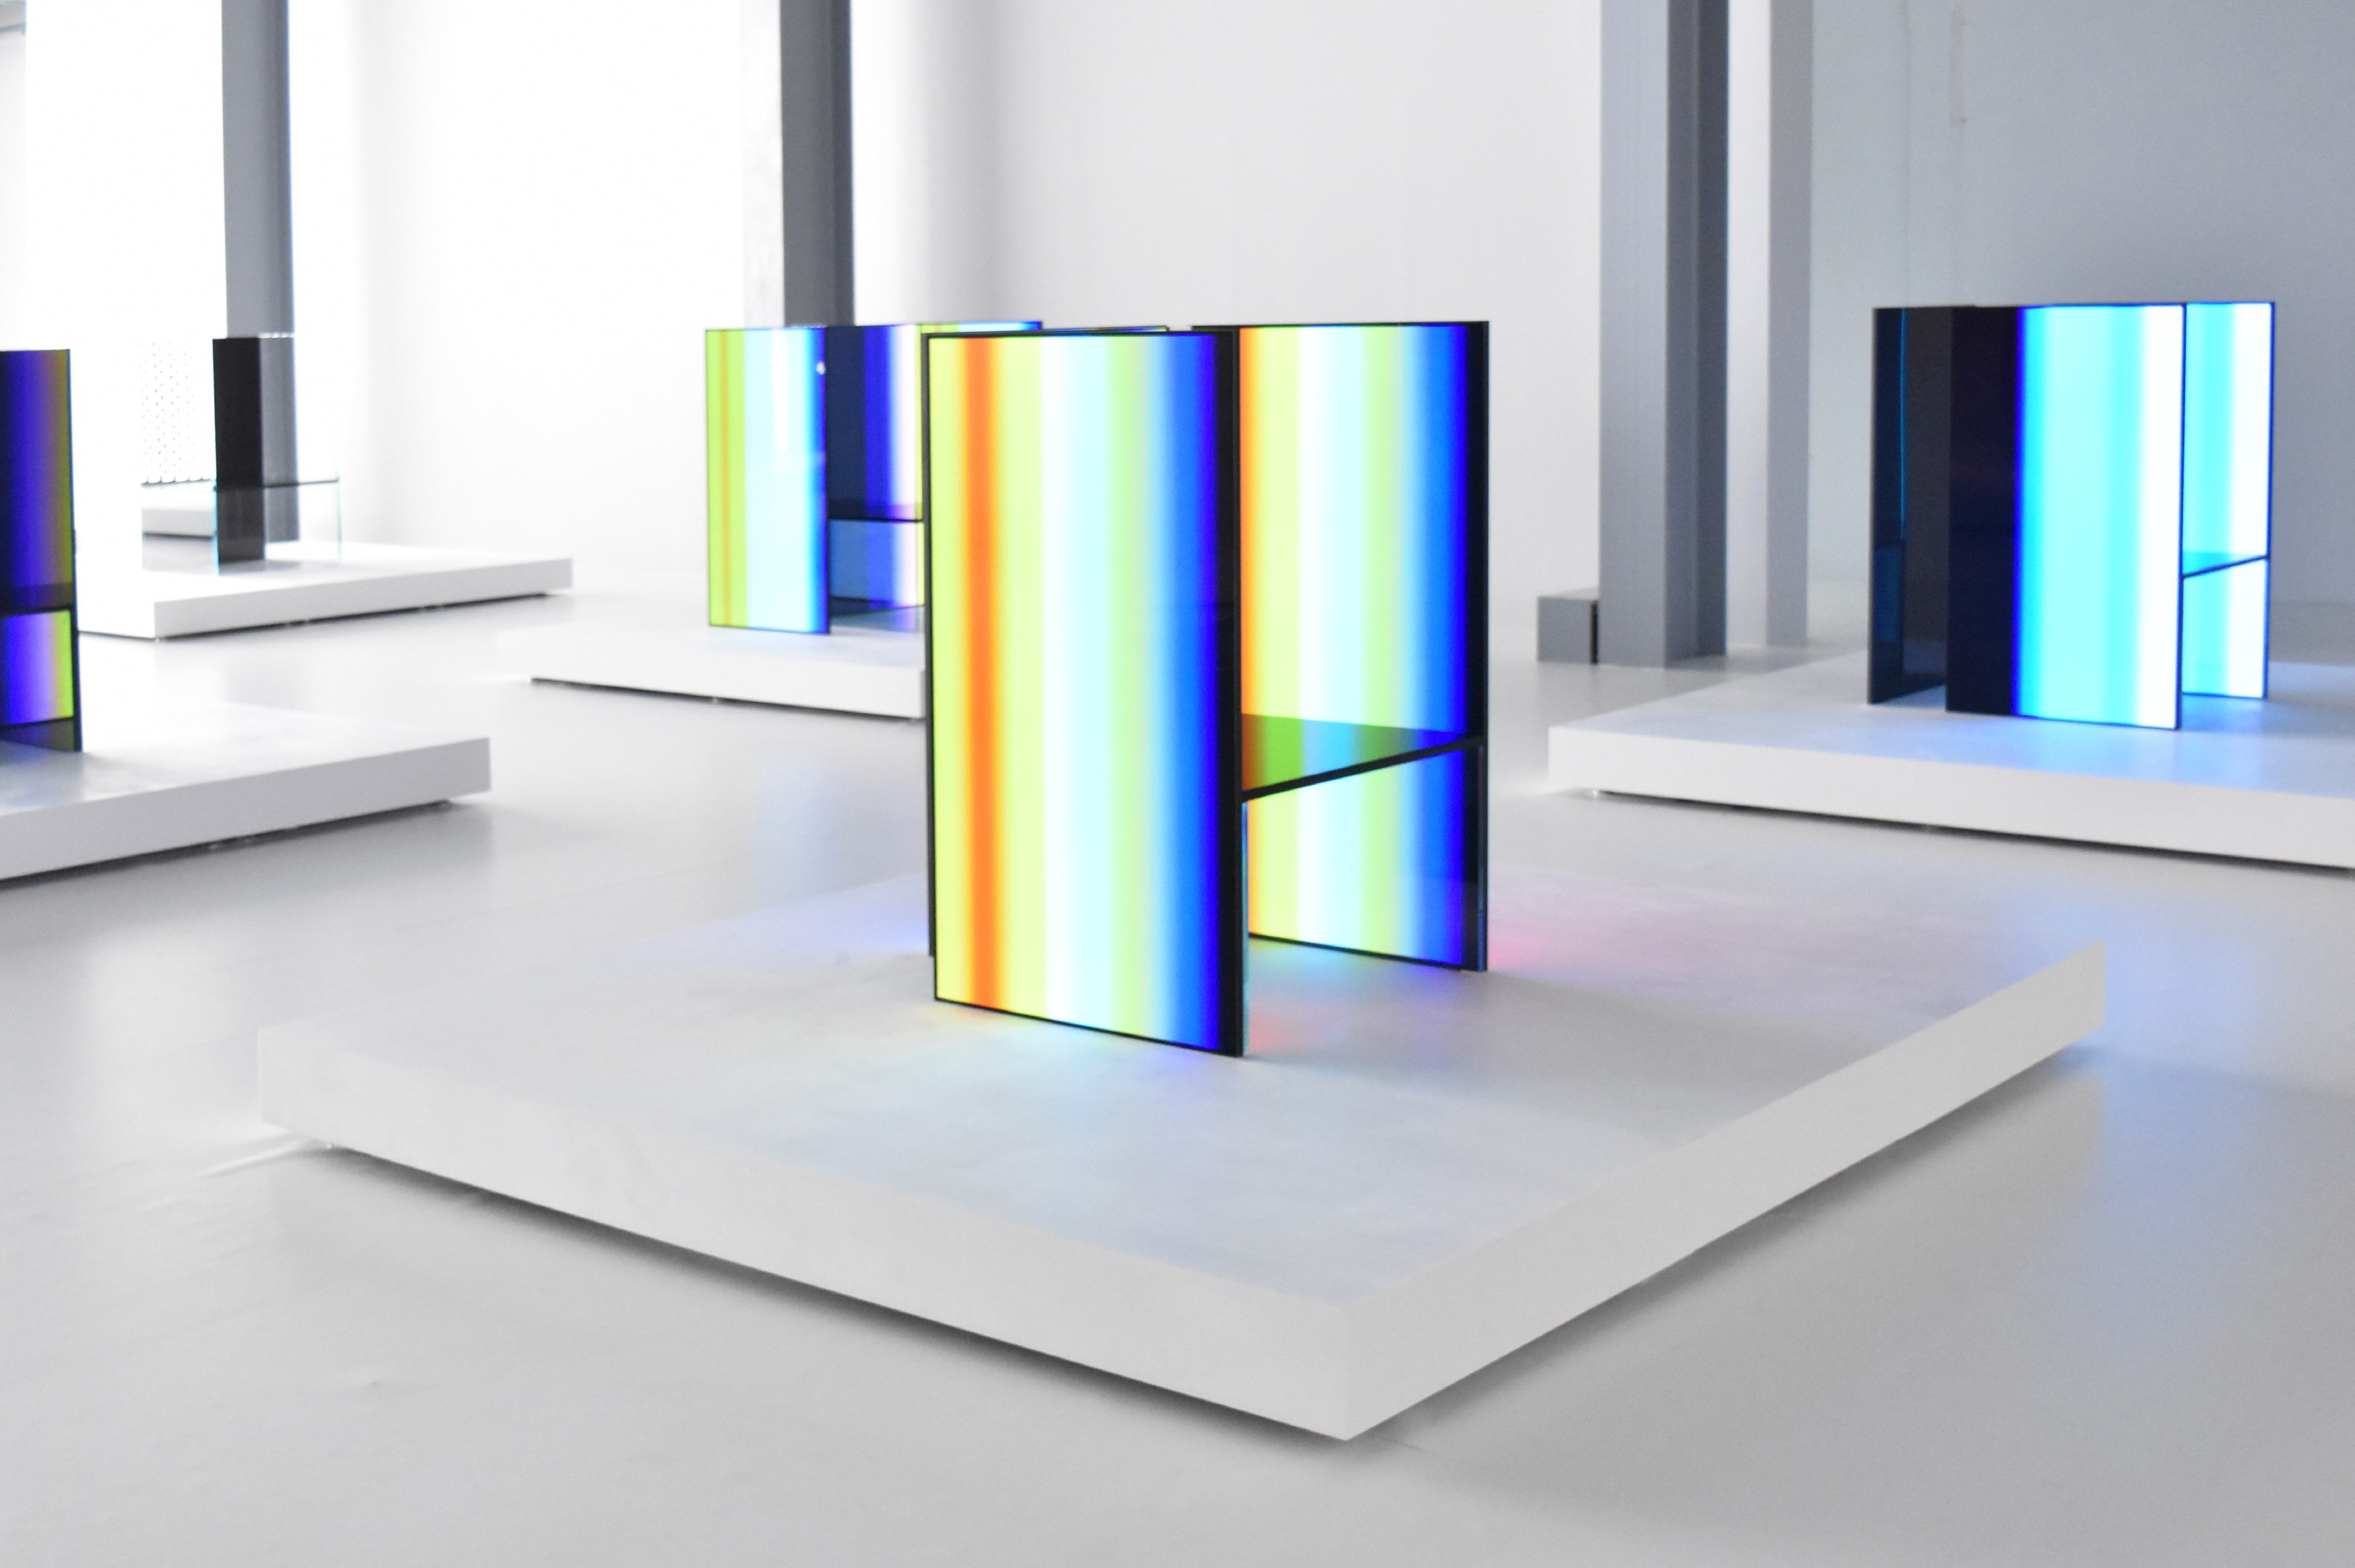 A close-up of one of the OLED panel installations found inside Tokujin Yoshioka's art exhibition, currently displaying numerous vibrant colors